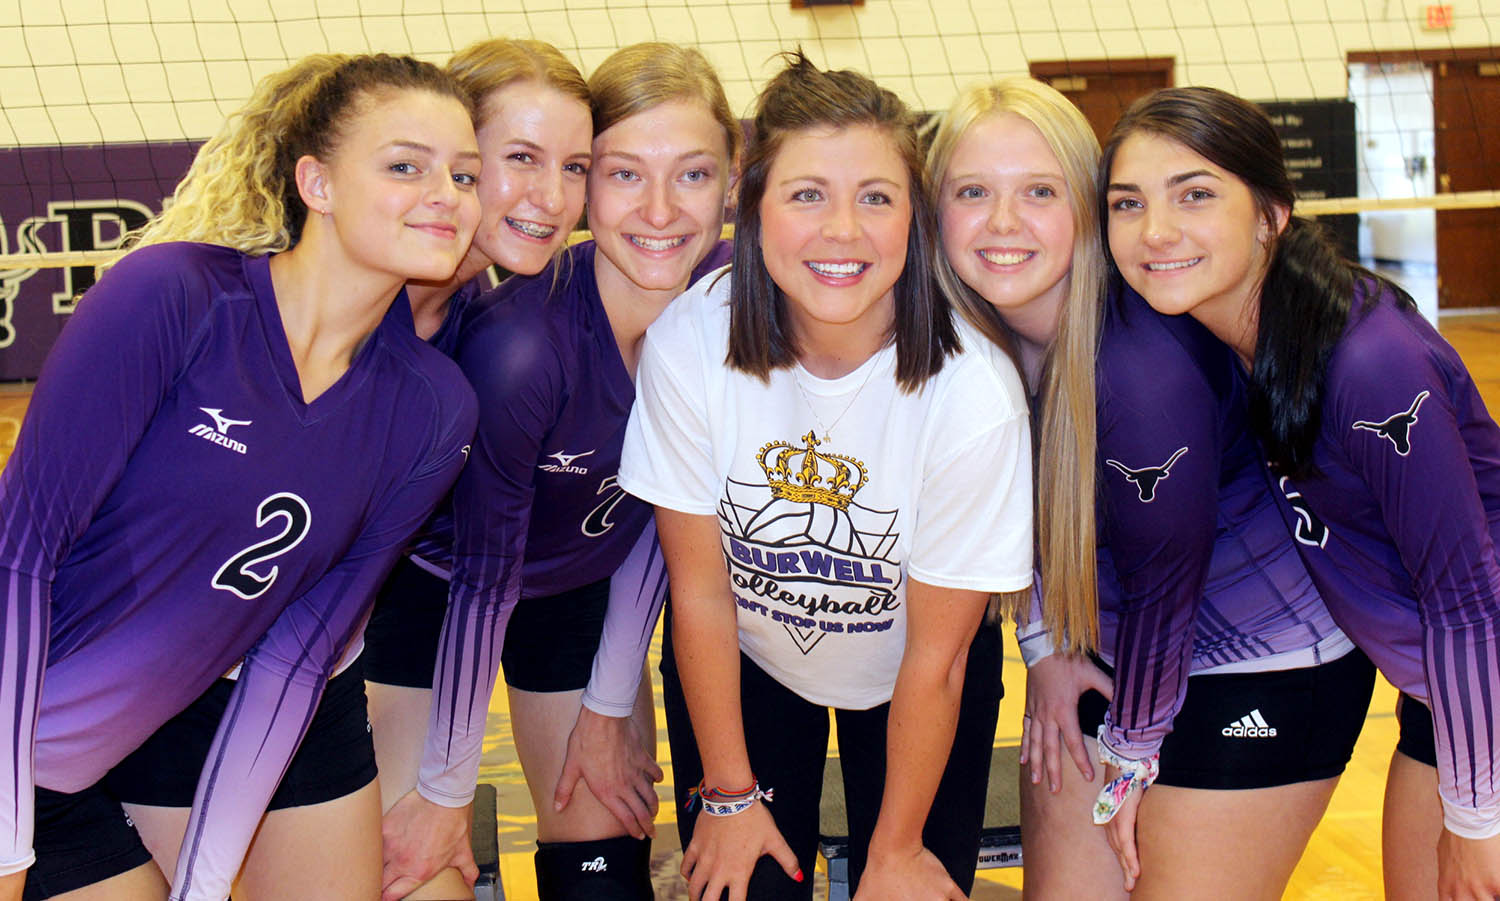 Megan Helberg, the head volleyball coach at Burwell High School, poses for a photo with the 2019 seniors.